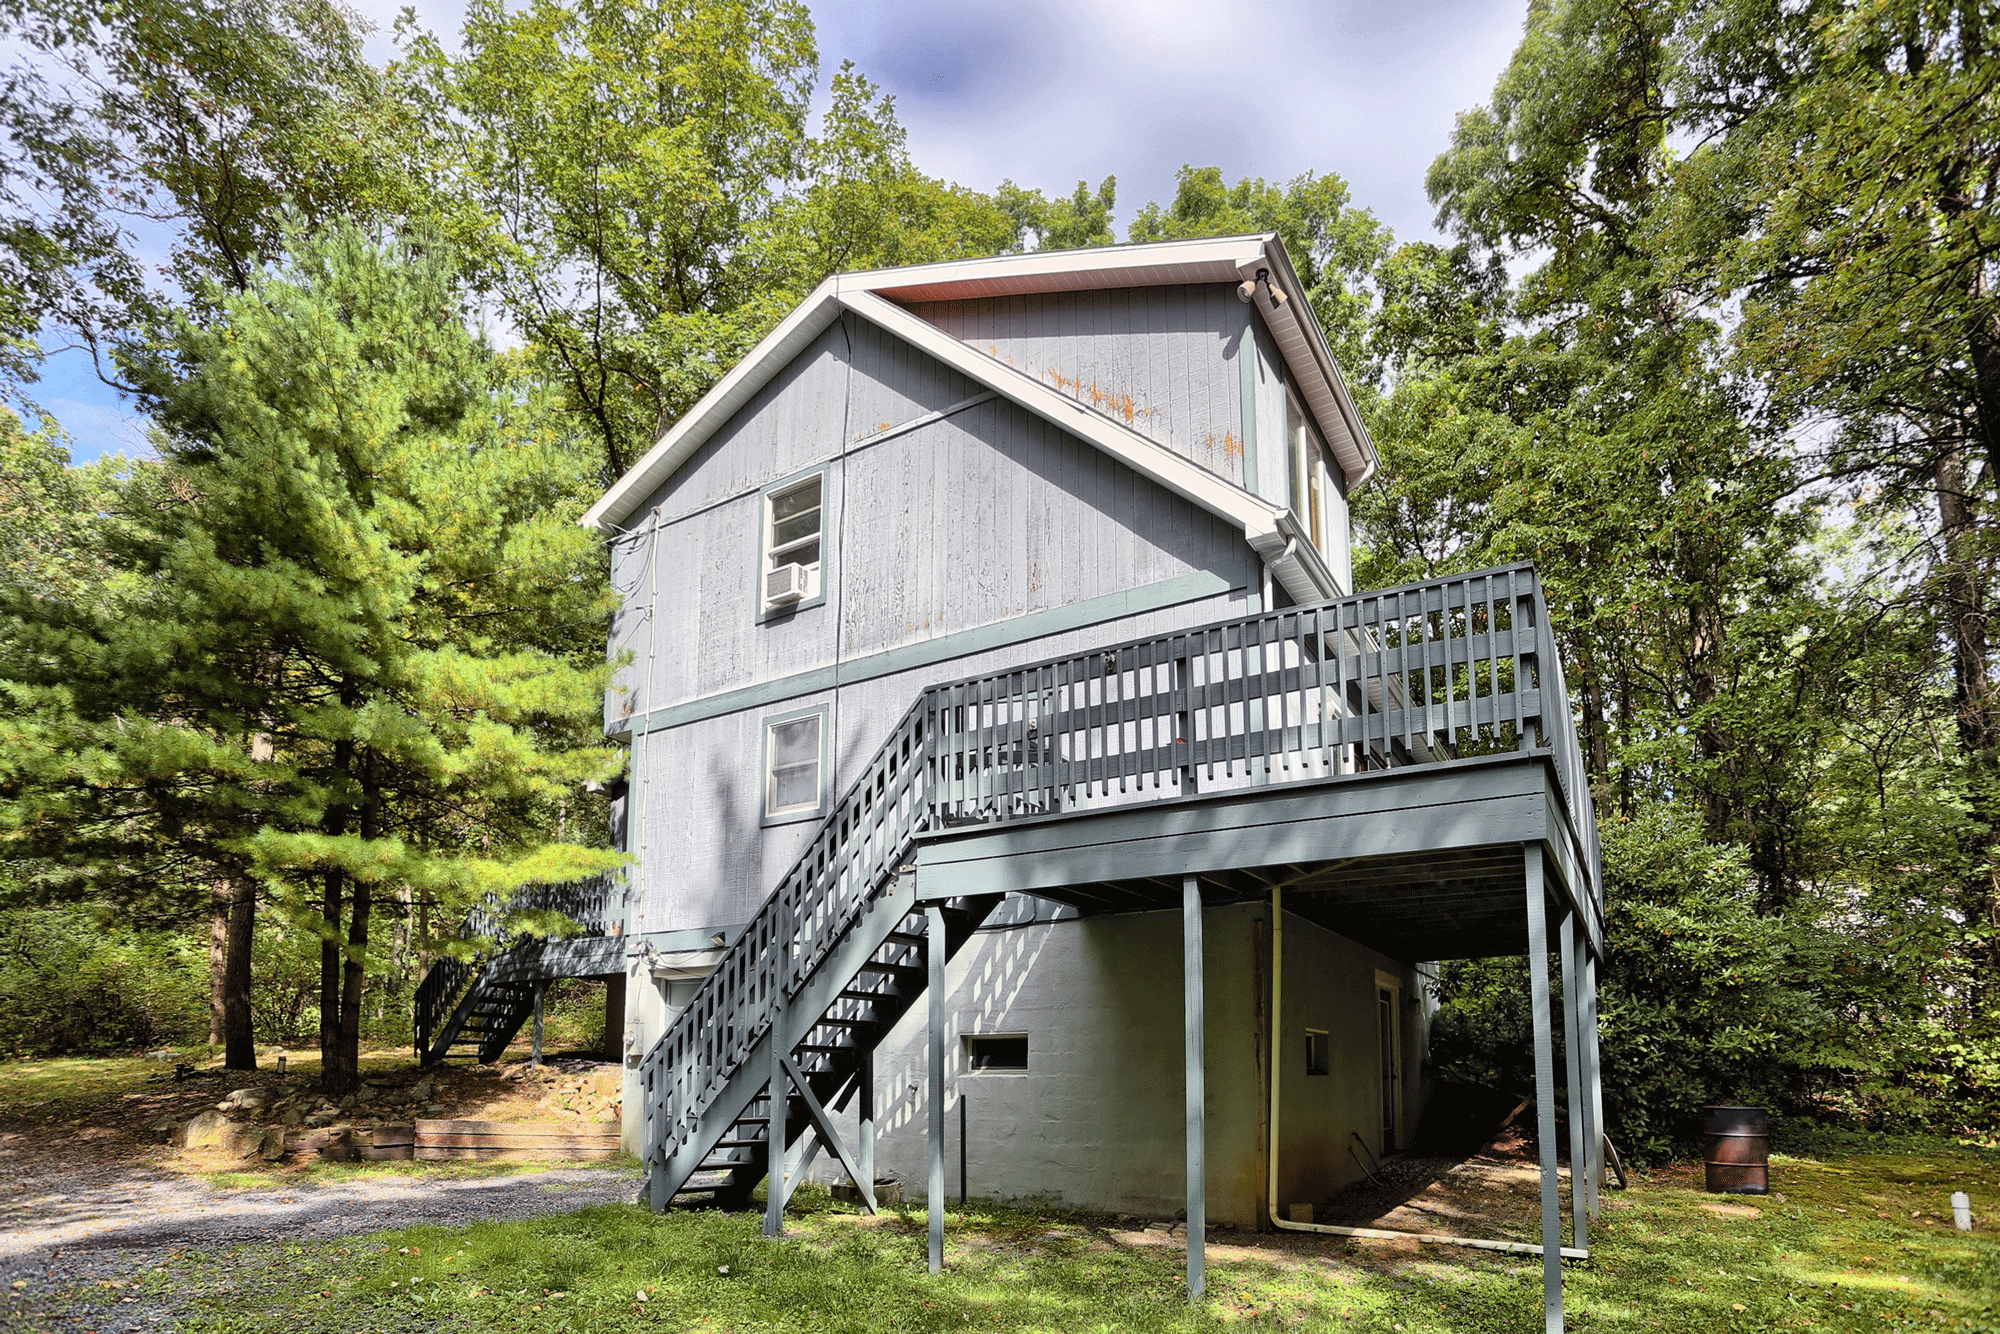 Rental Home In Bellefonte, PA | 1380 Barns Lane | Property Management, Inc.